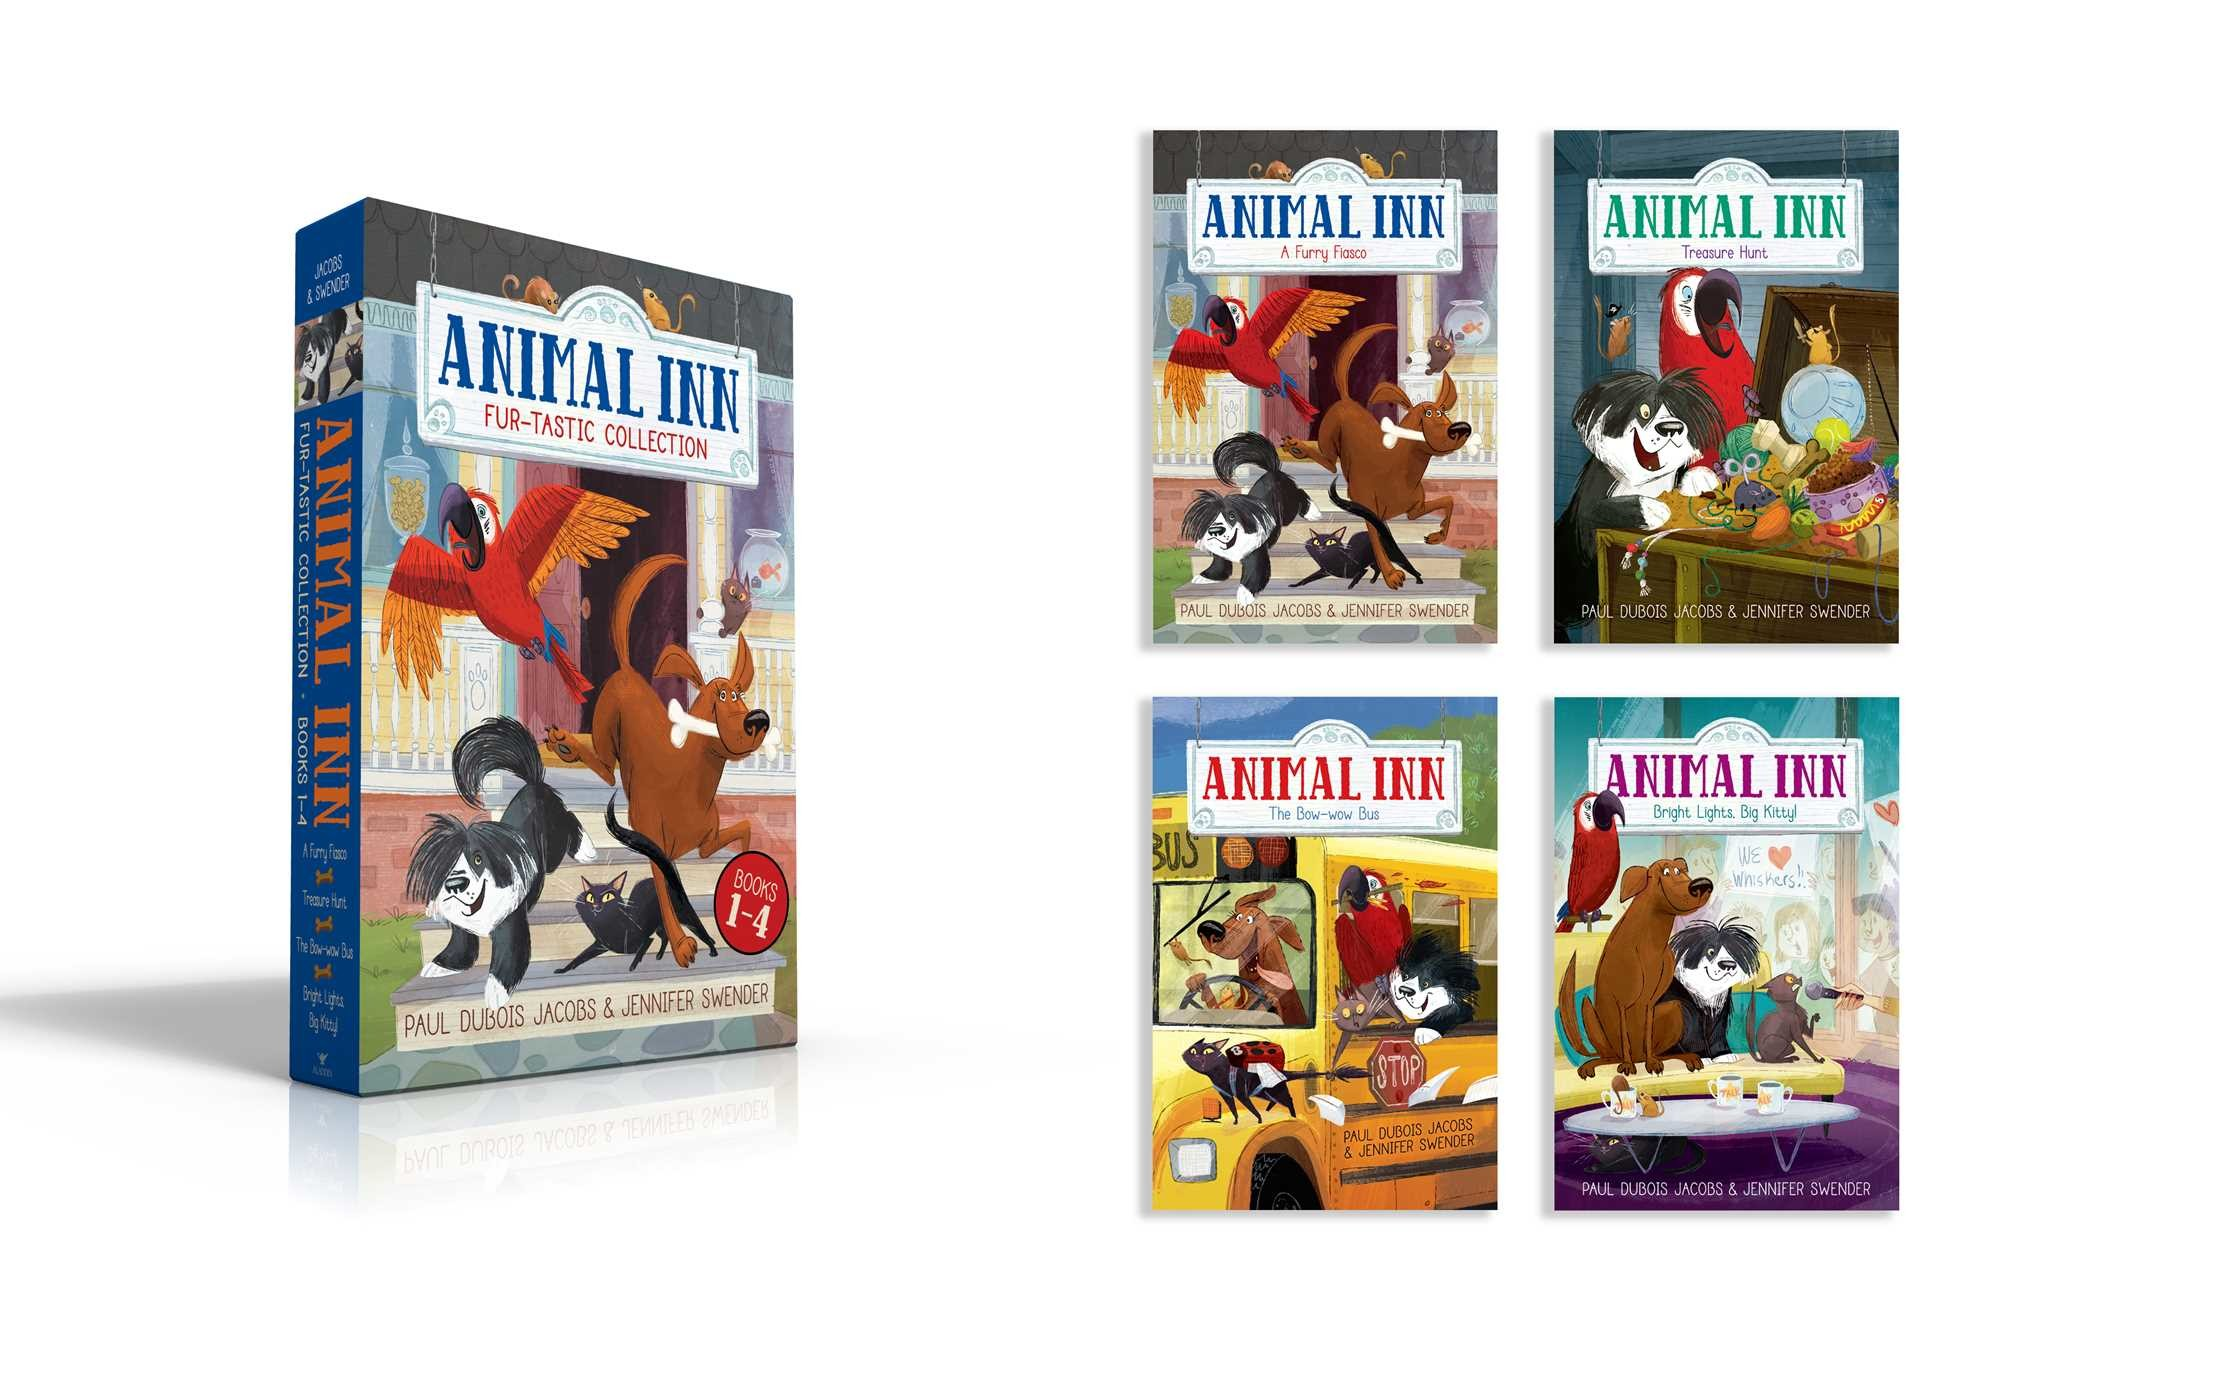 Animal Inn Fur Tastic Collection Books 1 4 9781481496902in01